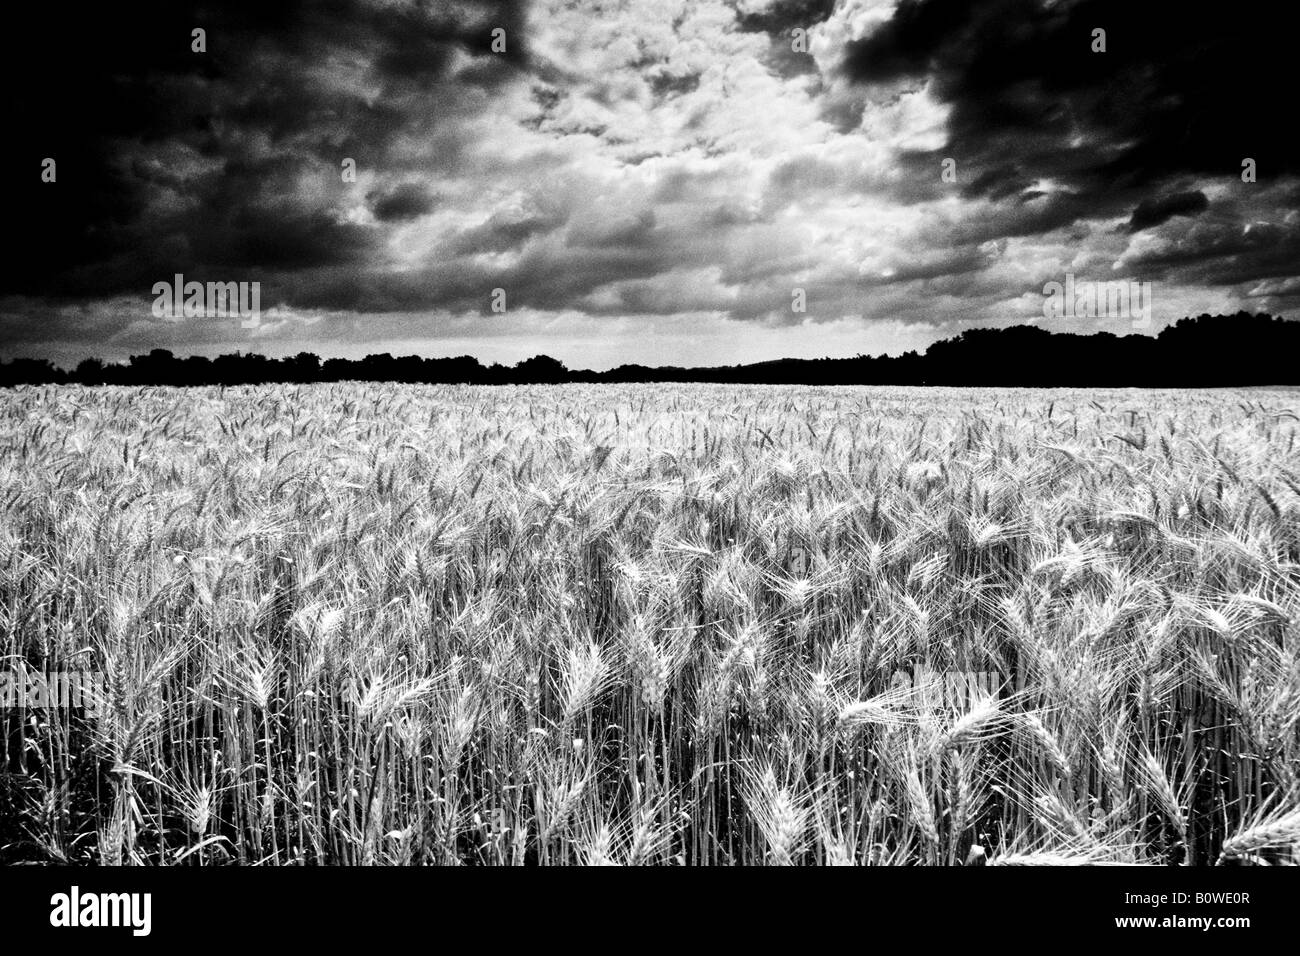 Wheat field ripe for harvest, grain field, dramatic clouds, thunderclouds, manipulated shot, black and white - Stock Image